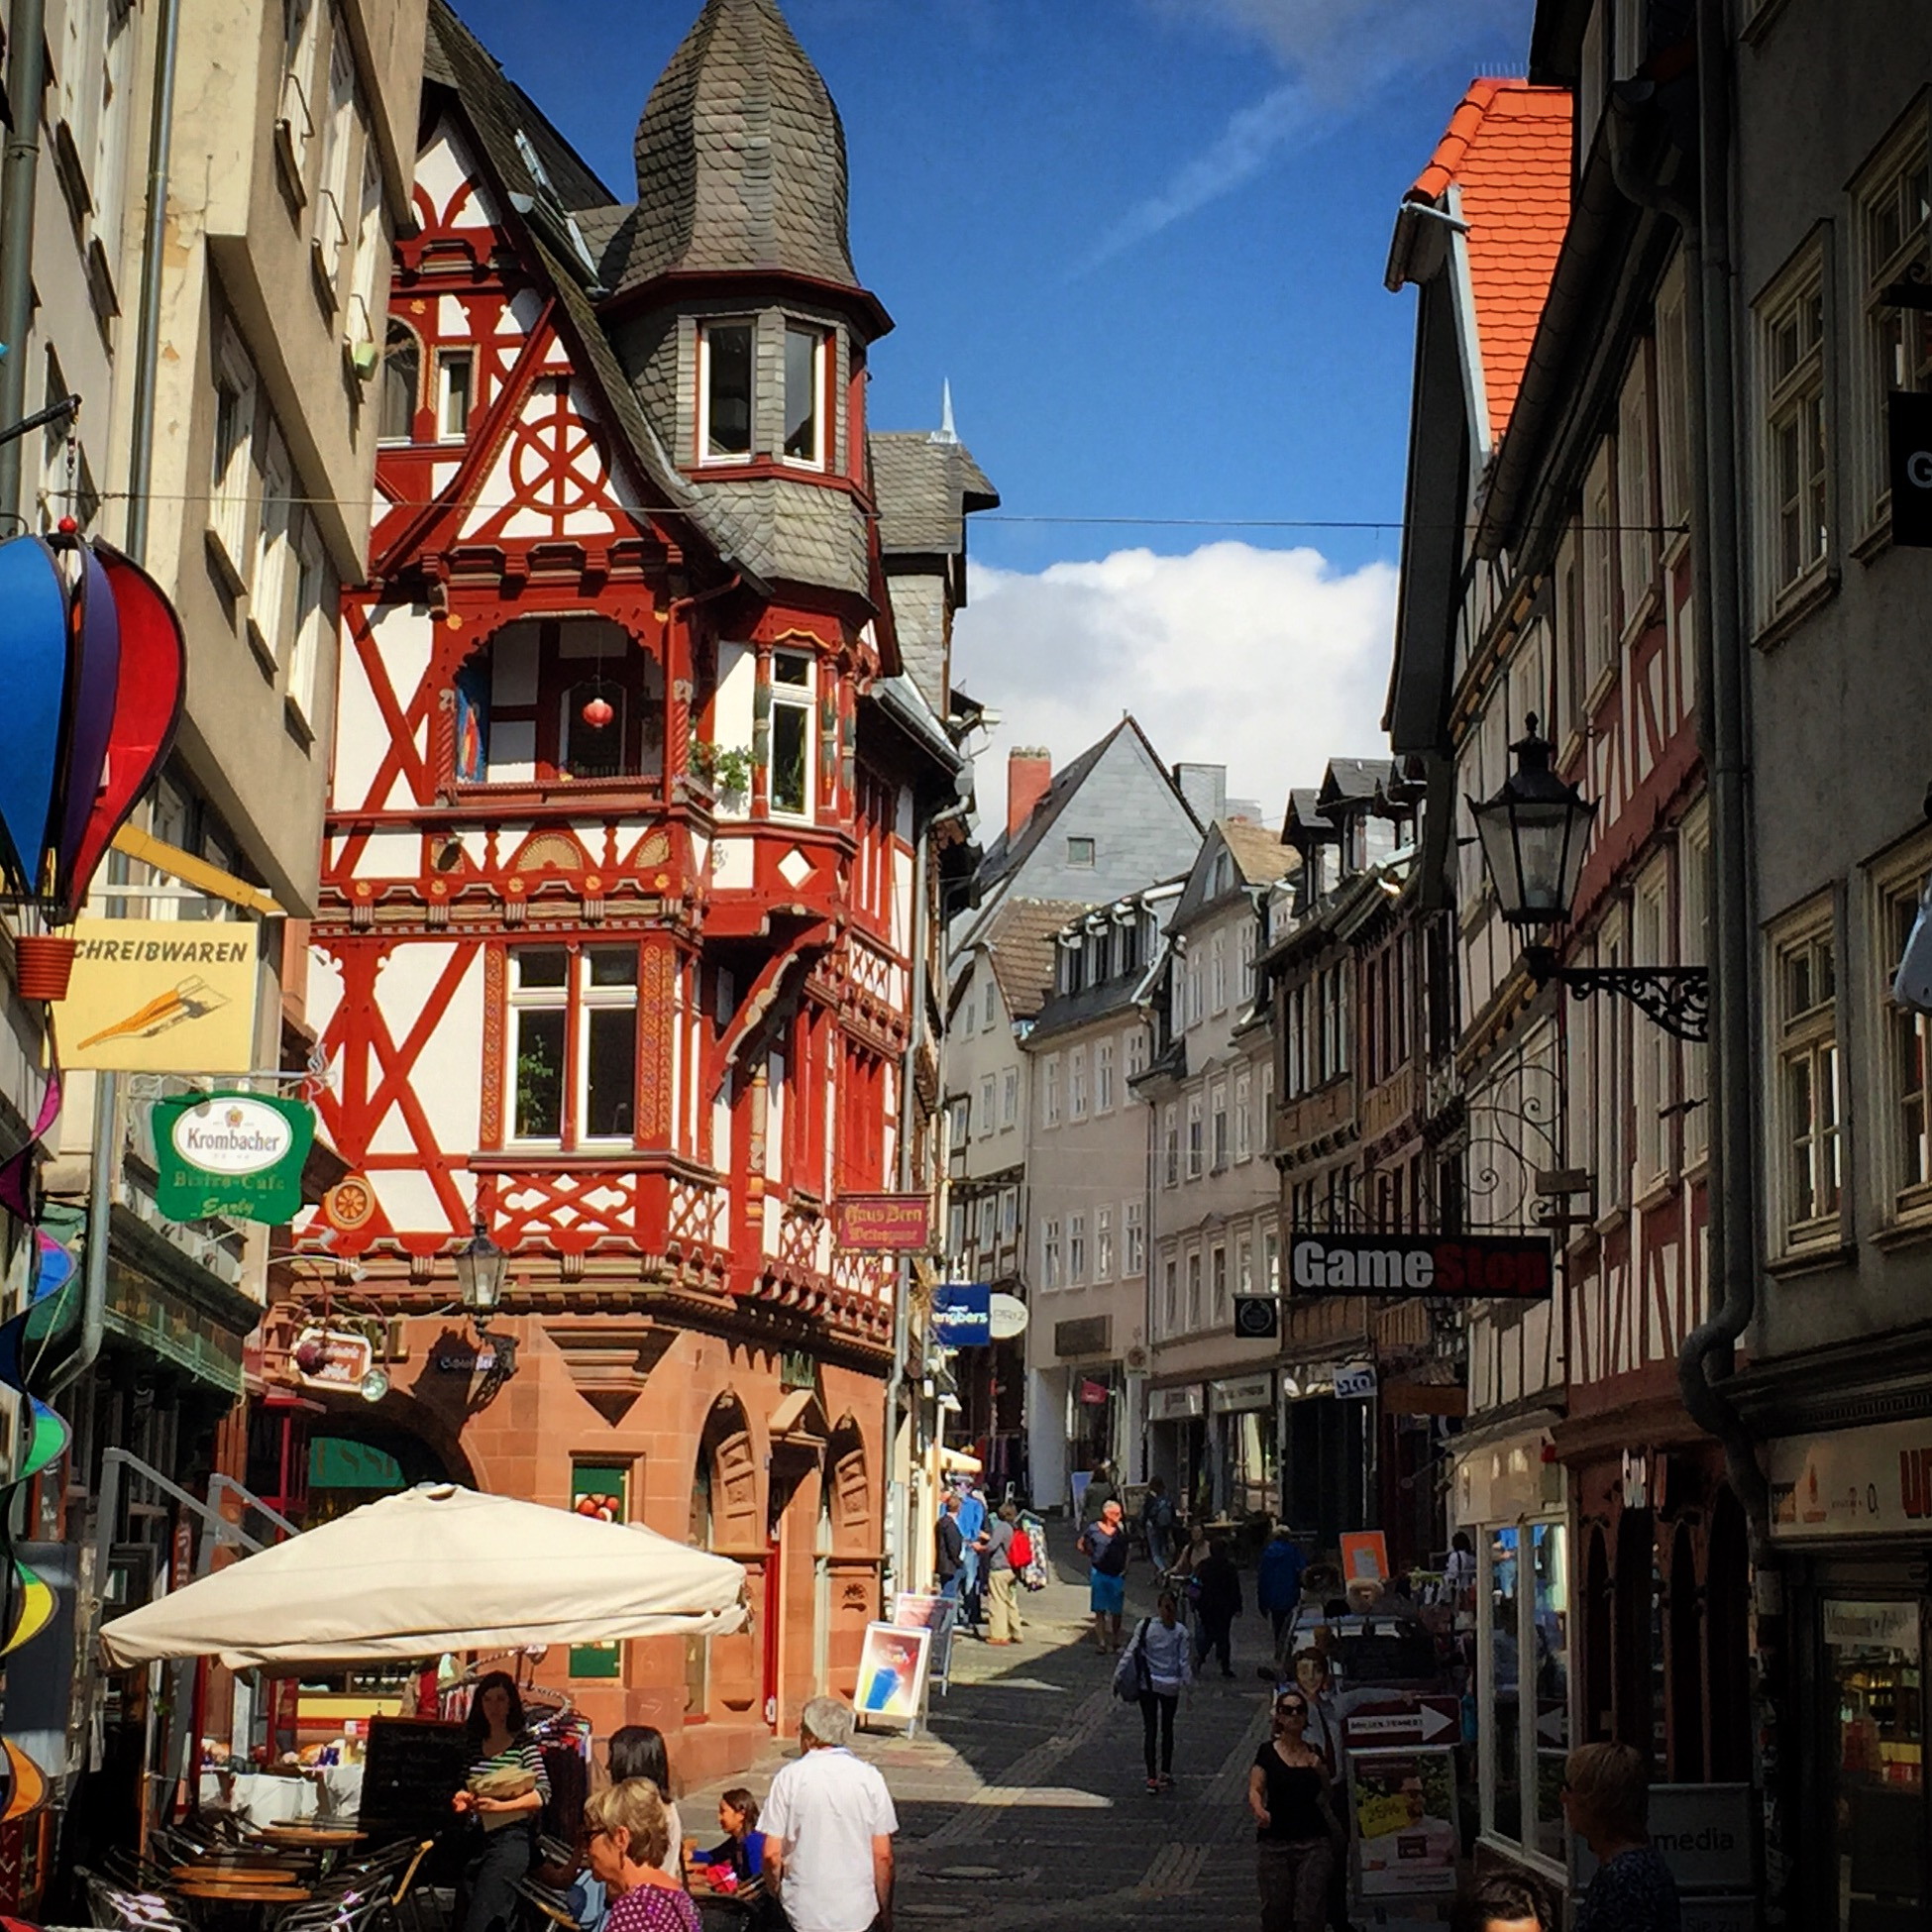 The shops and streets of the Oberstadt.